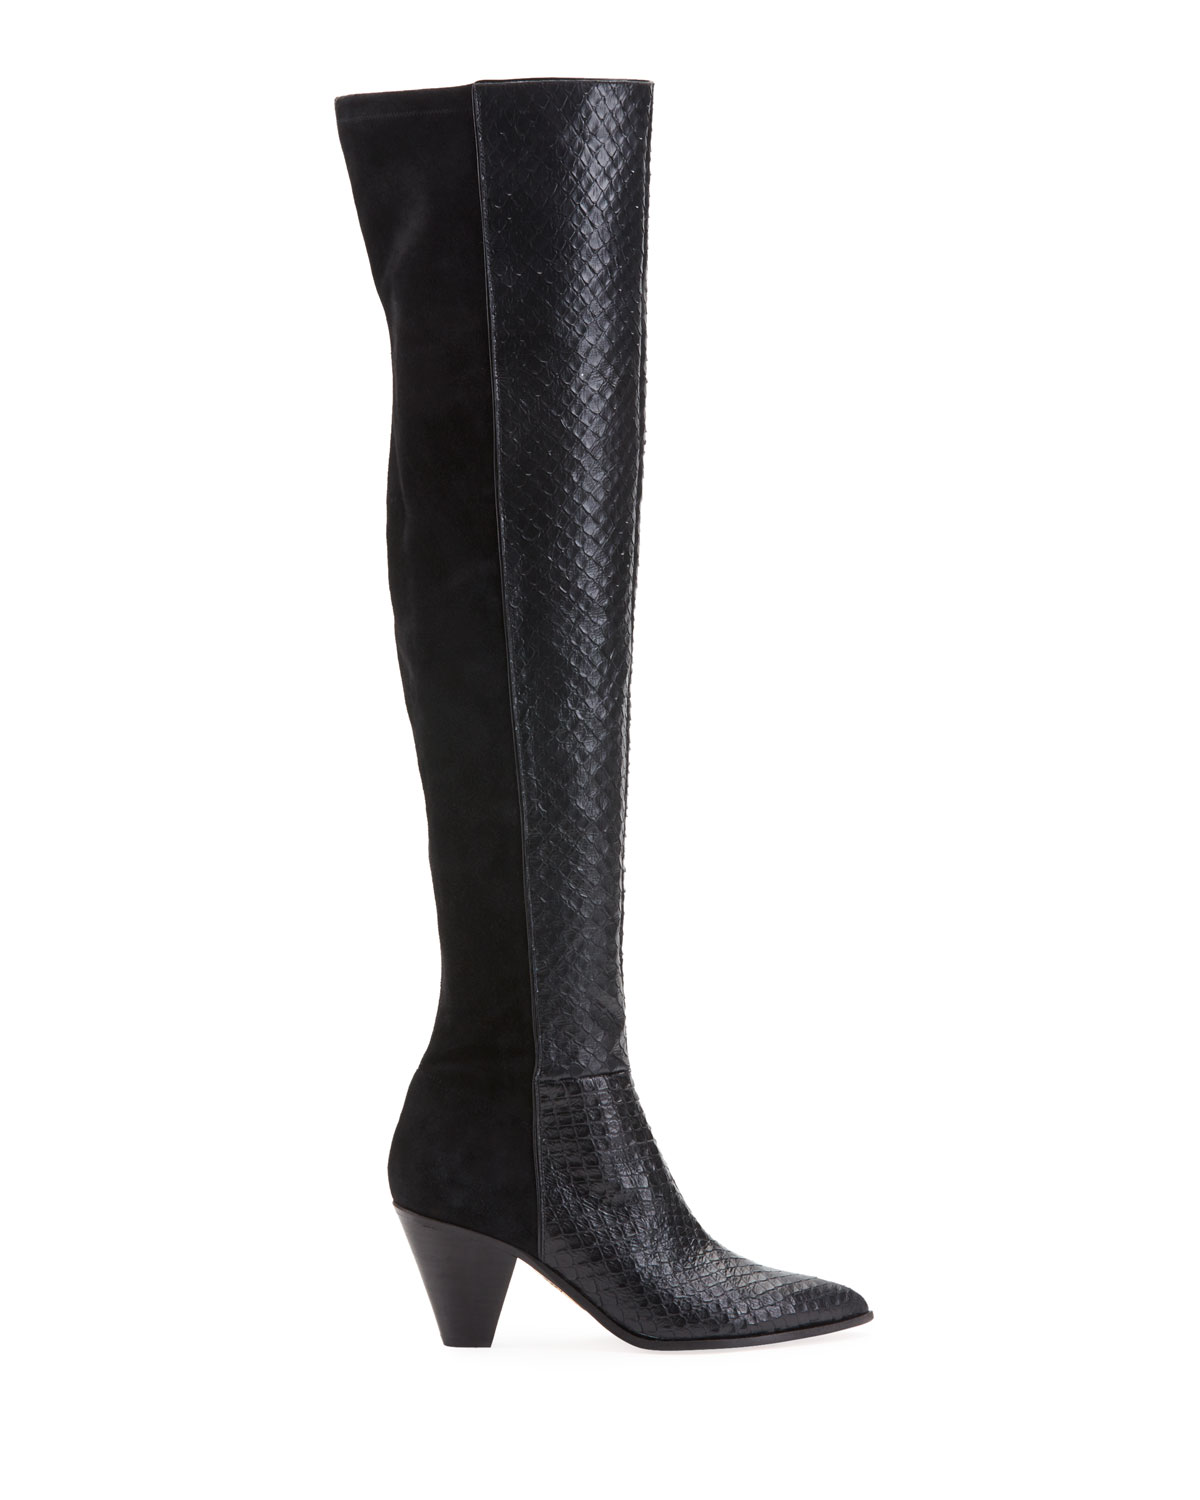 Anaconda Print Leather & Suede Thigh High Boots by Aquazzura